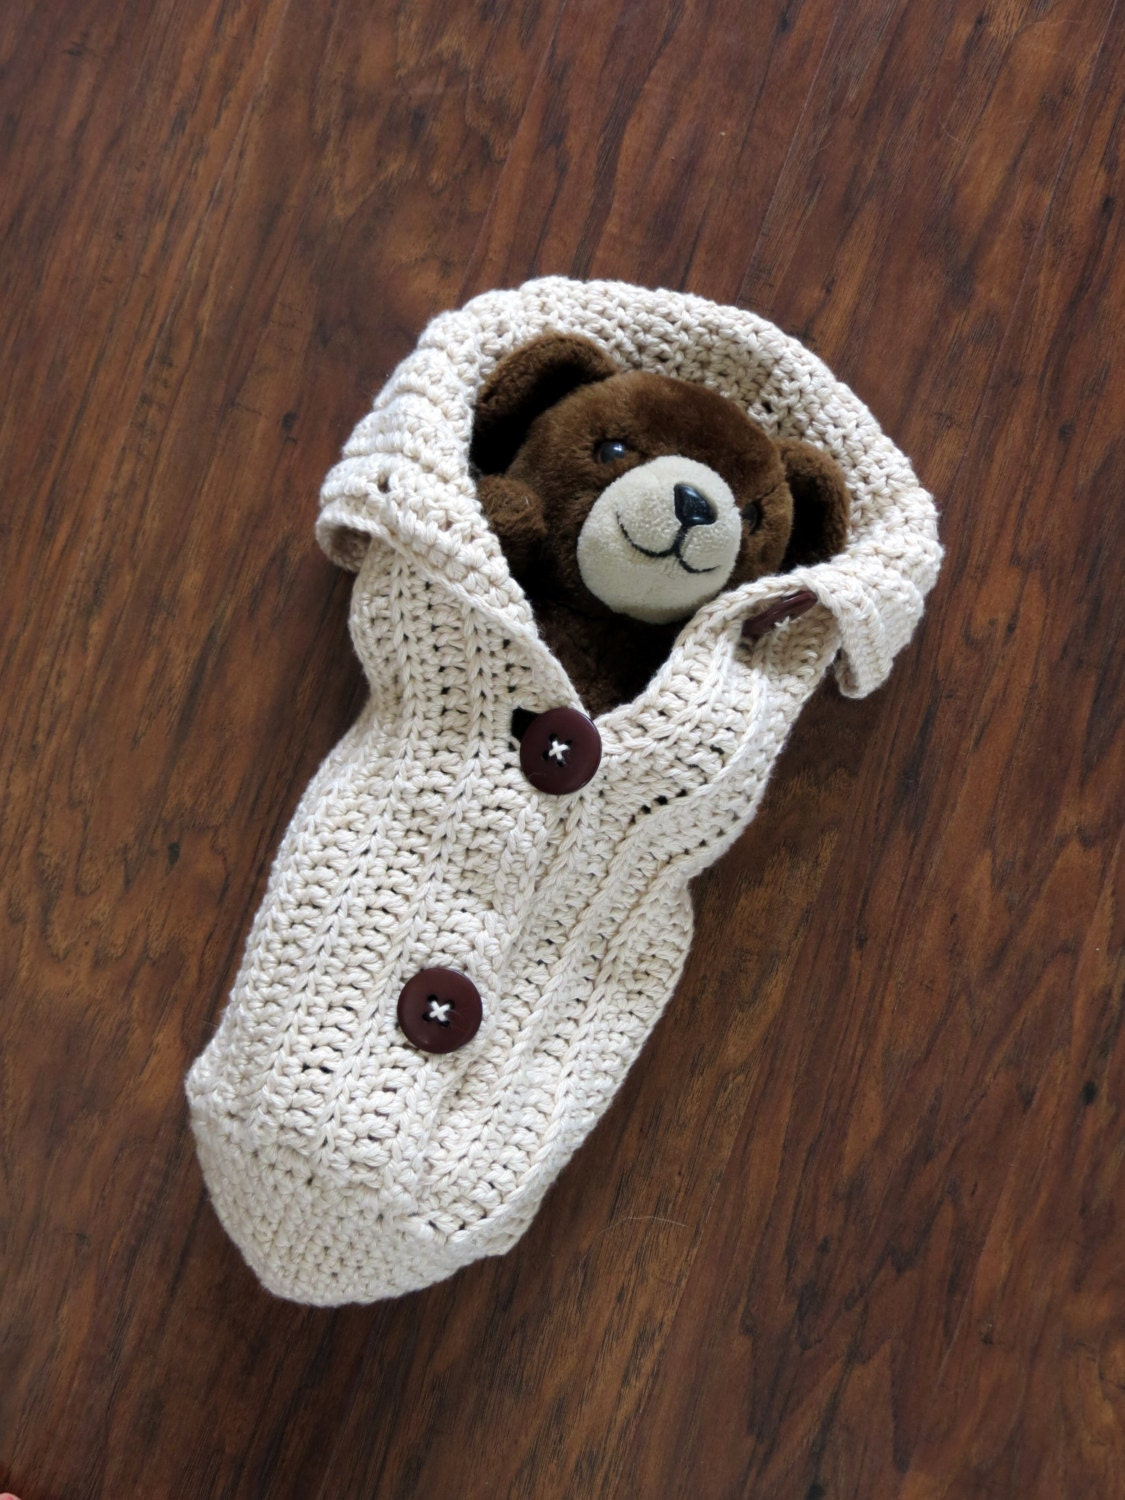 Crochet Pattern For Swaddle Blanket : Crochet Cocoon Pattern Photo Prop EASY CROCHET PATTERN